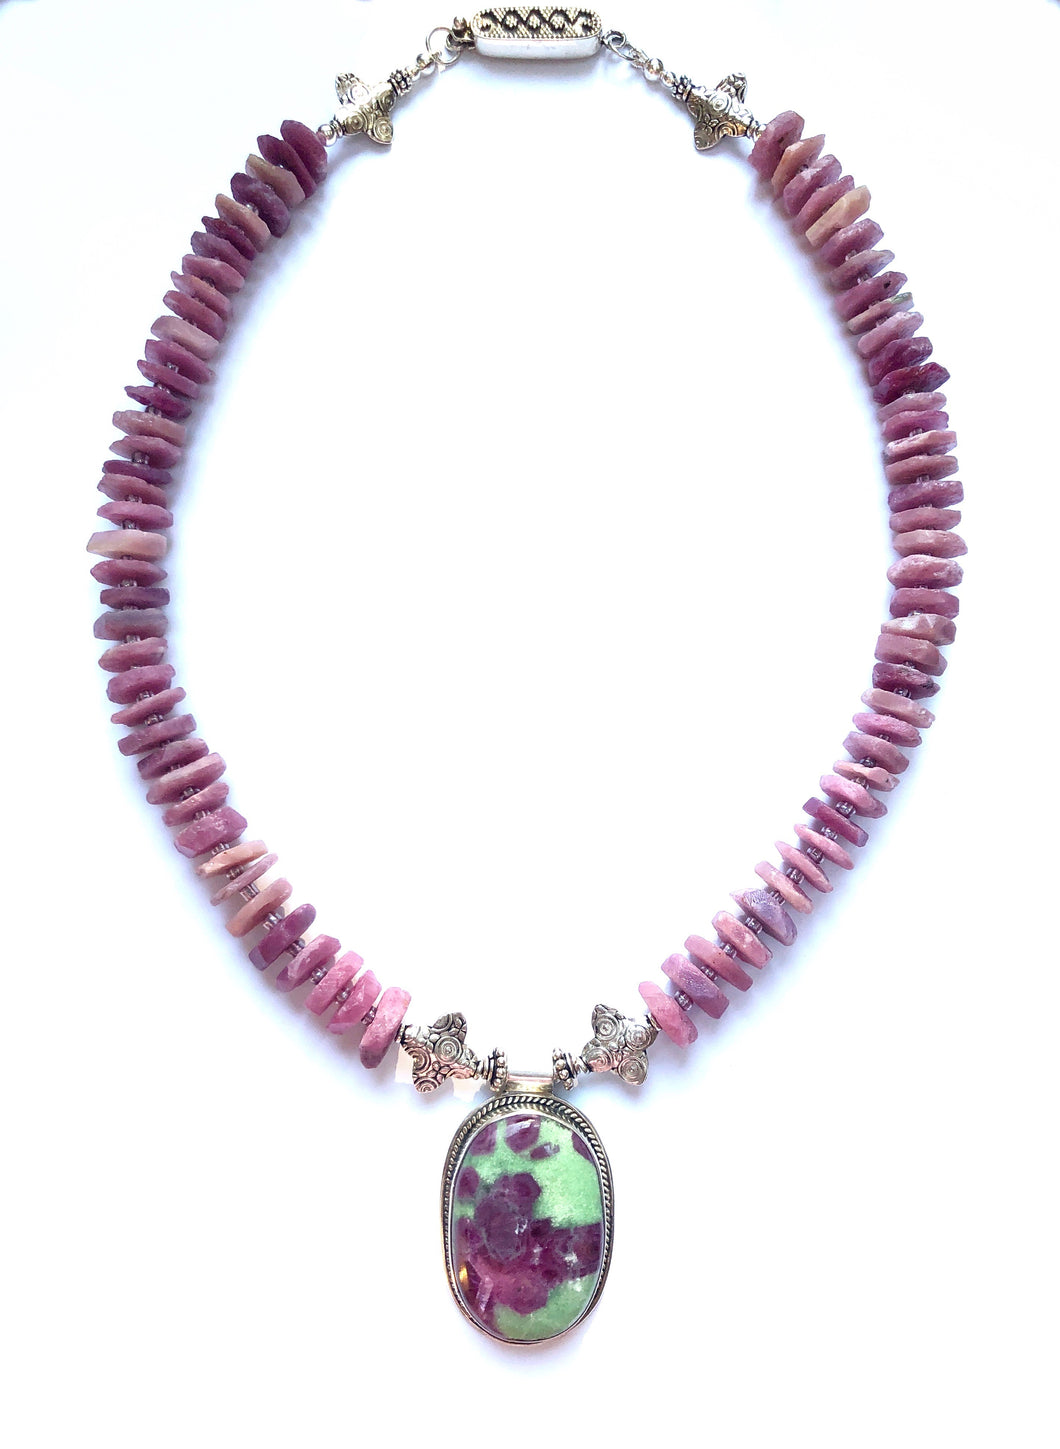 A Very Special Statement Piece with Ruby Zoisite!